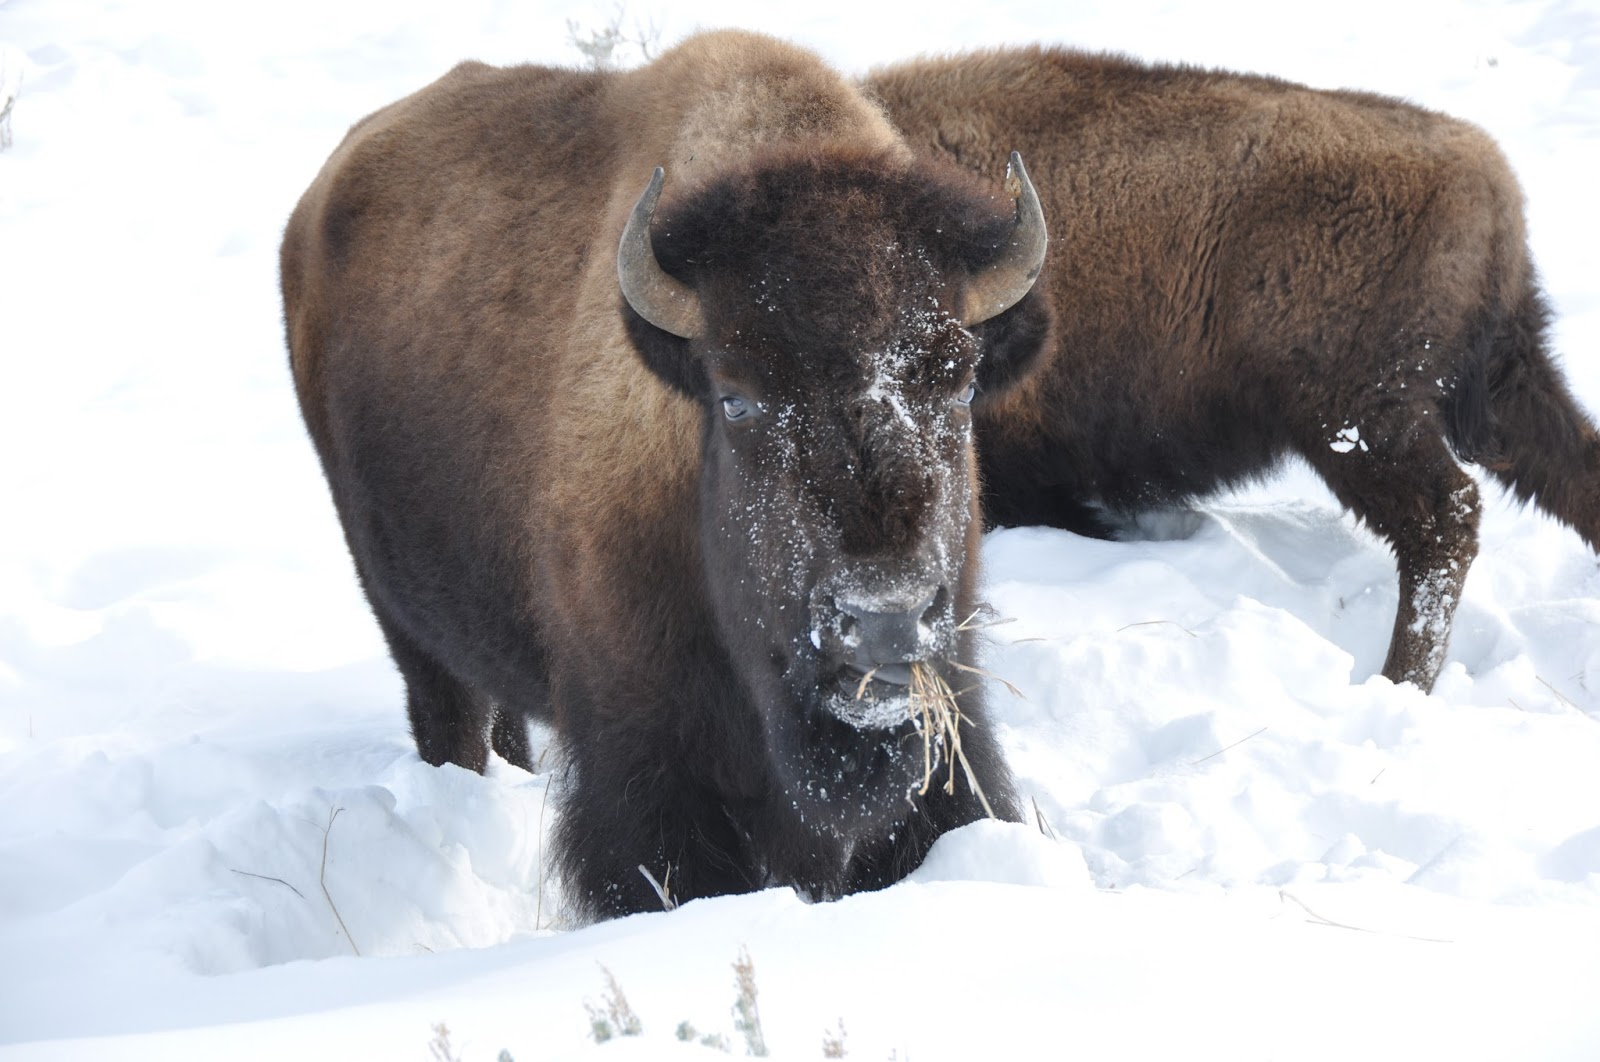 bison use their head to move snow out of the way to find grass to eat